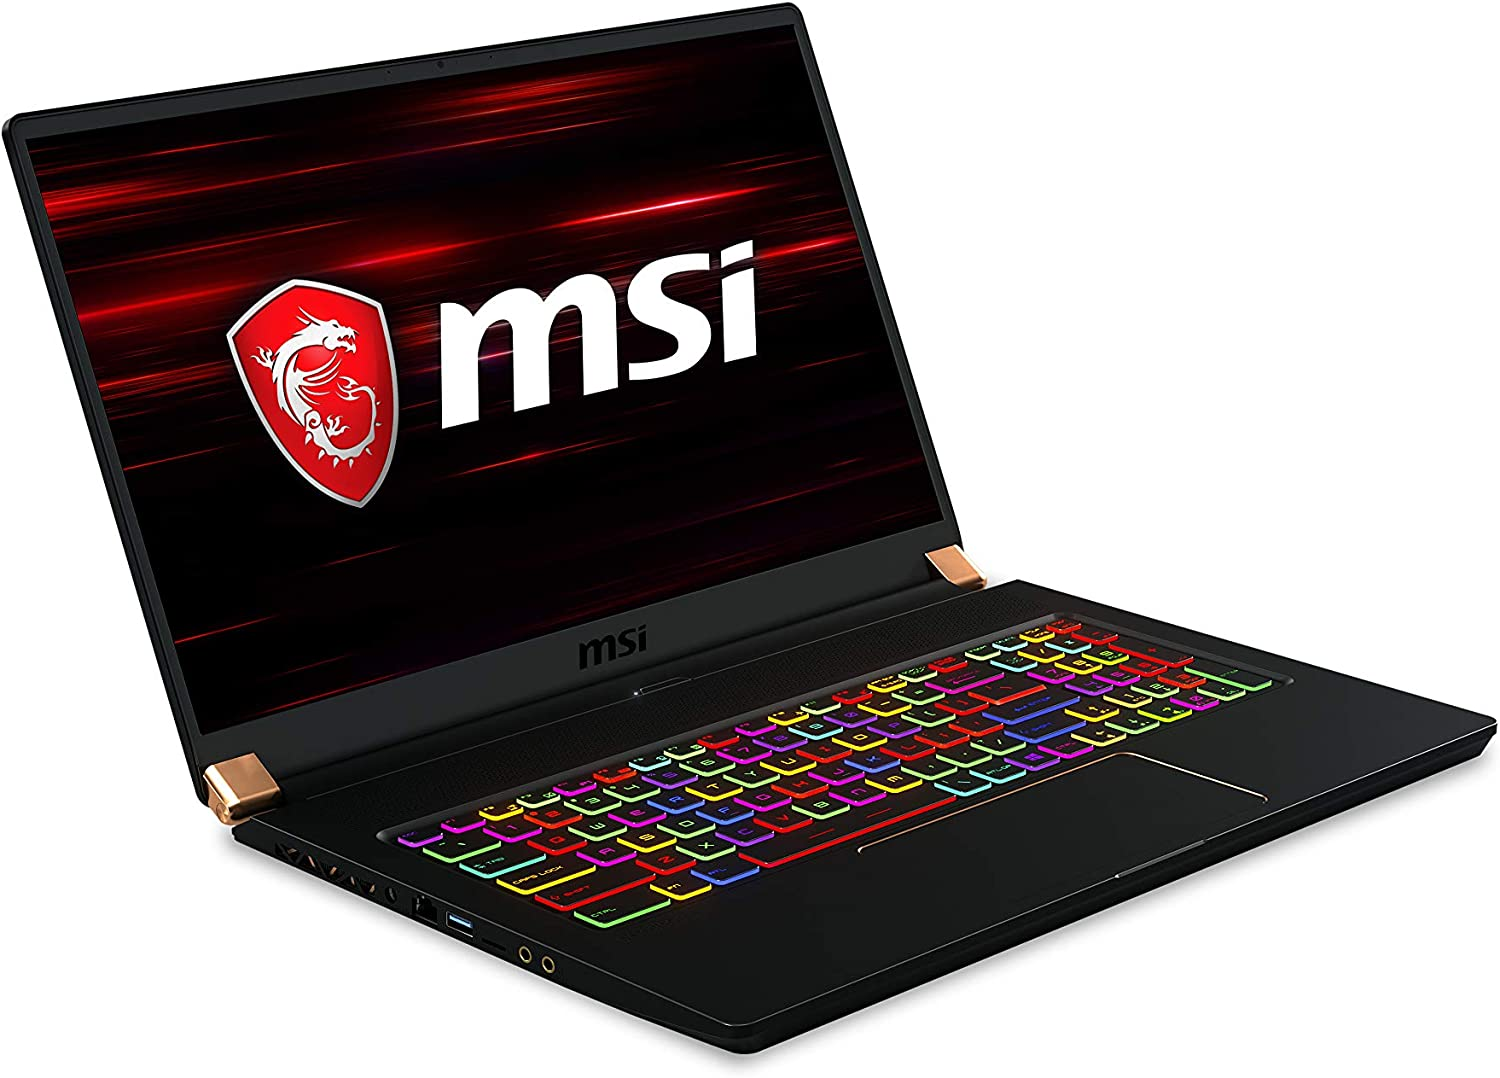 "MSI GS75 Stealth 10SE-050 17.3"" 240Hz Ultra Thin and Light Gaming Laptop Intel Core i7-10750H RTX 2060 16GB 512GB NVMe SSD Win10PRO VR Ready"